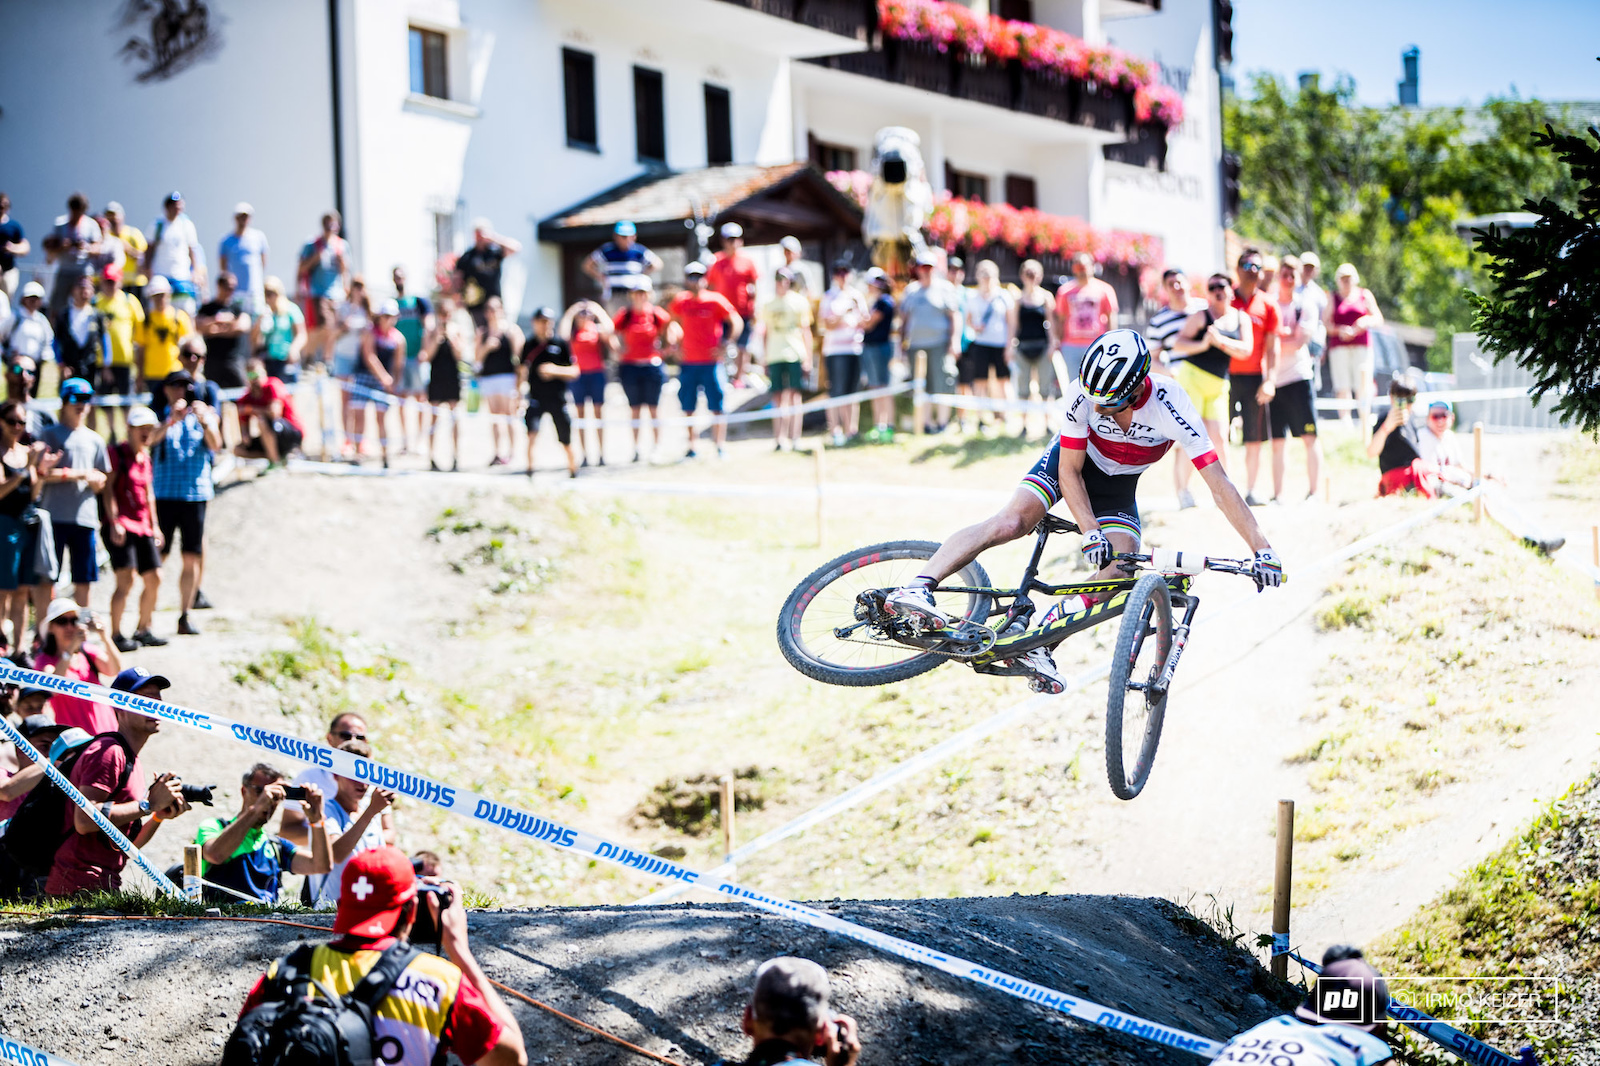 Riding into his last lap proving his confidence Schurter whips it up.